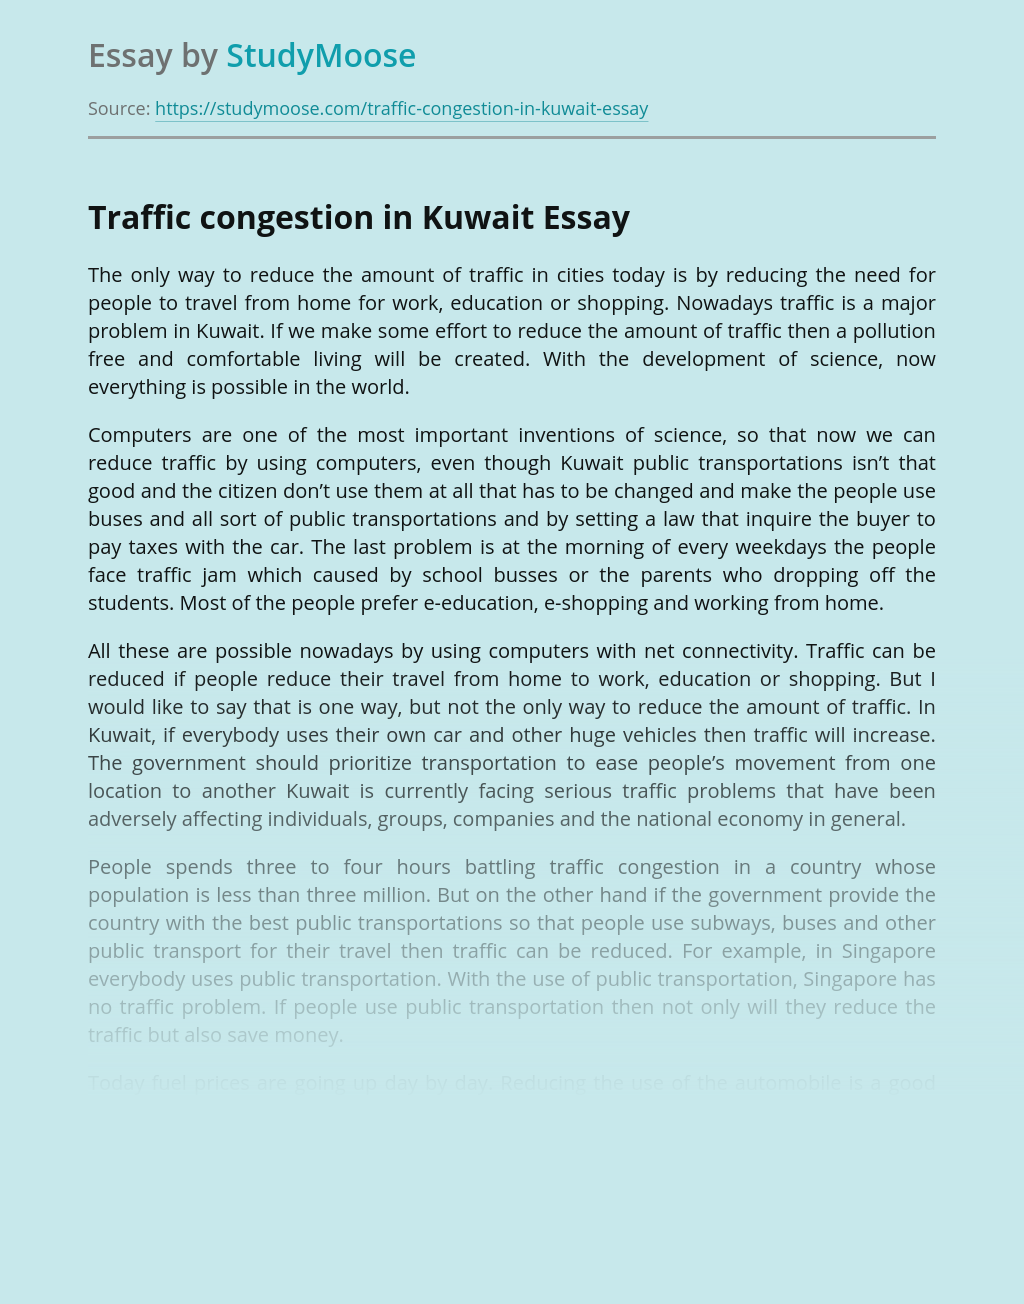 Traffic congestion in Kuwait